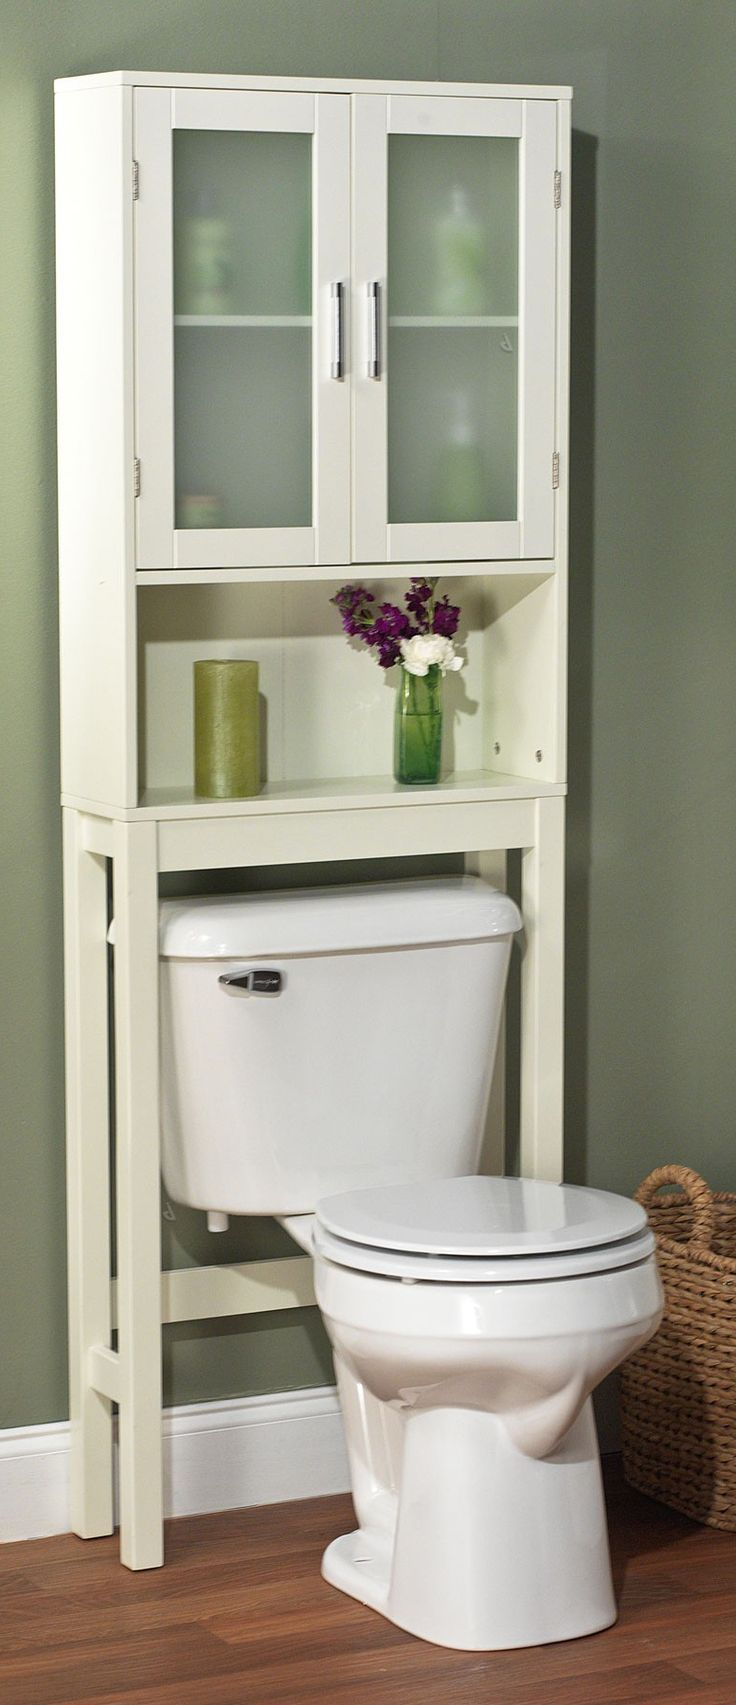 Bathroom space saver over toilet cupboard such a good idea for small spaces furniture for Bathroom shelving ideas for small spaces